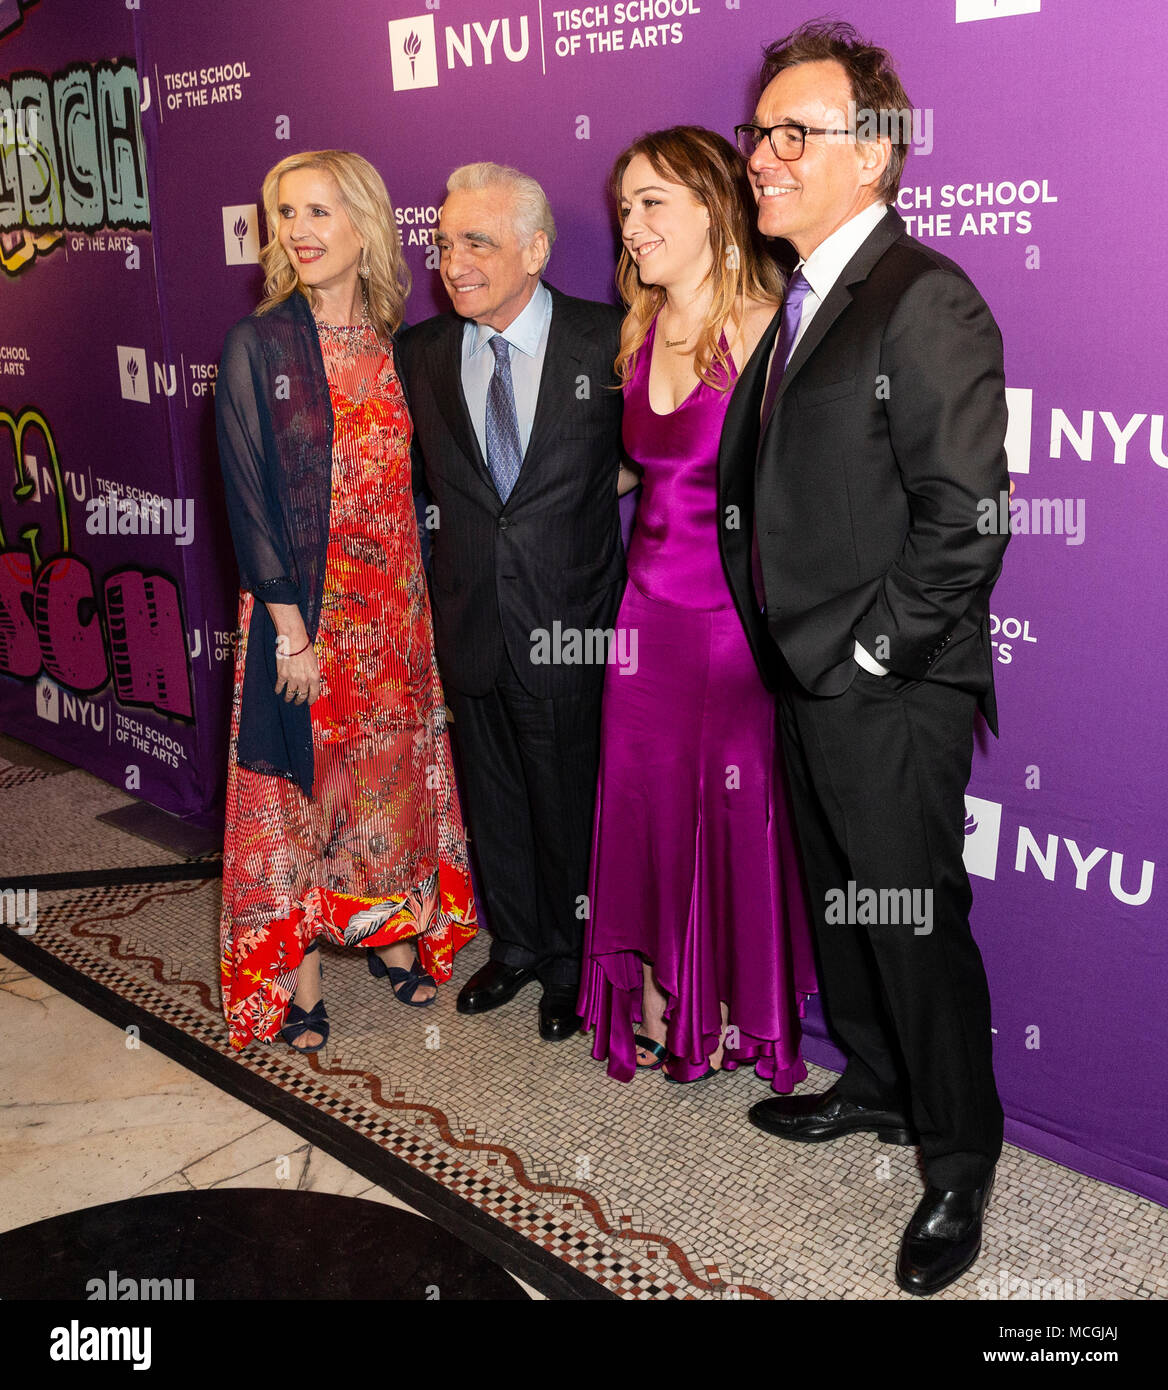 Nyu Tisch School Of The Arts Location Nyu Tisch School Of The Arts 2018 Gala Stock Photos And Nyu